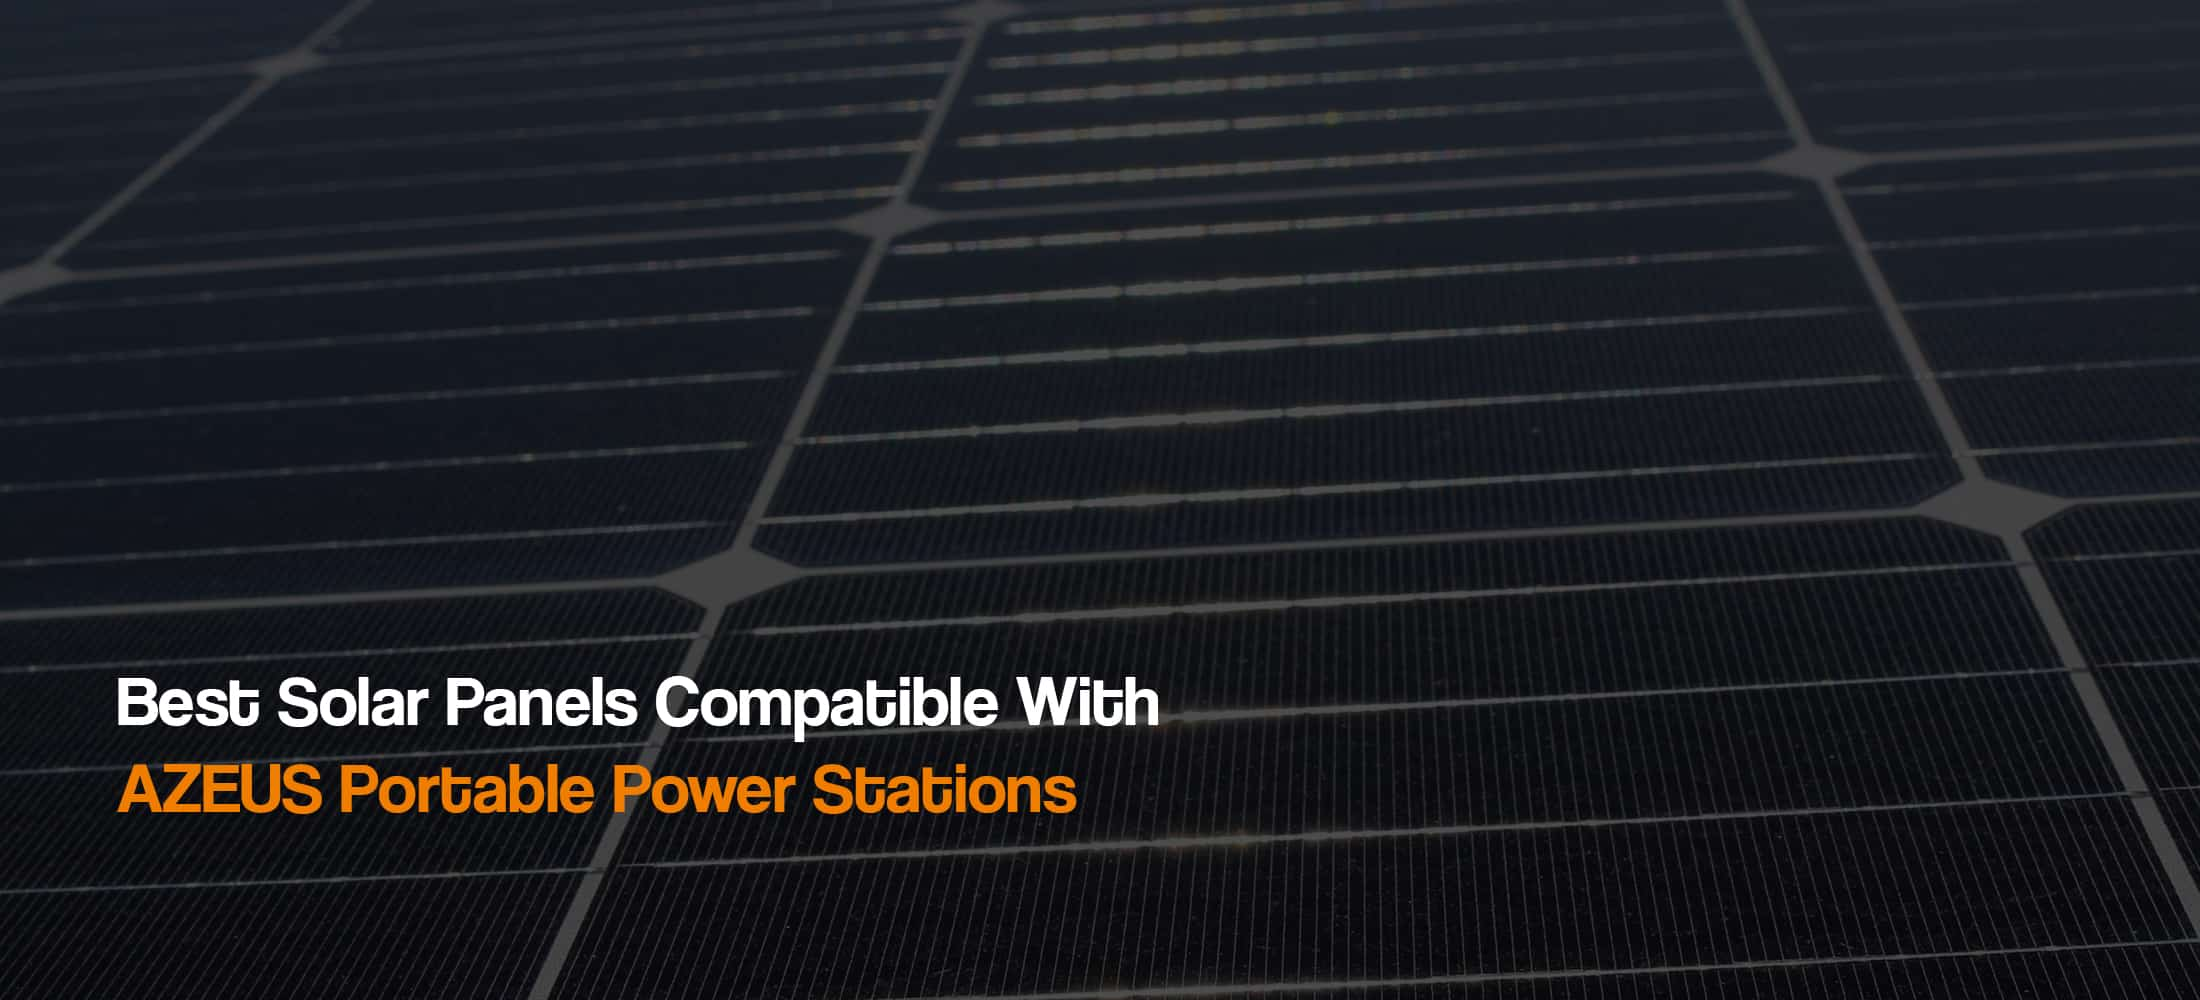 best-solar-panels-compatible-with-azeus-solar-generators-power-stations-the-solar-addict